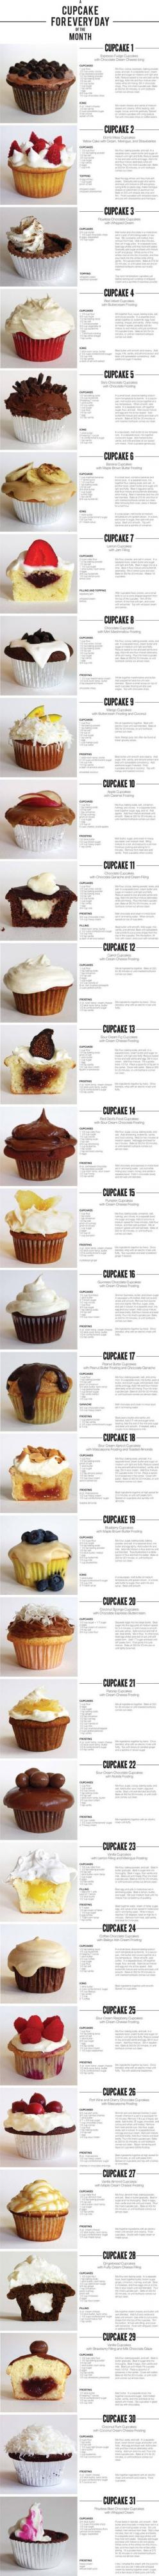 a cupcake for every day of the month!: Cupcakes Cake, Cuppycake, Cupcake Recipes, 31 Cupcakes, Sweet Tooth, Cup Cake, Dessert